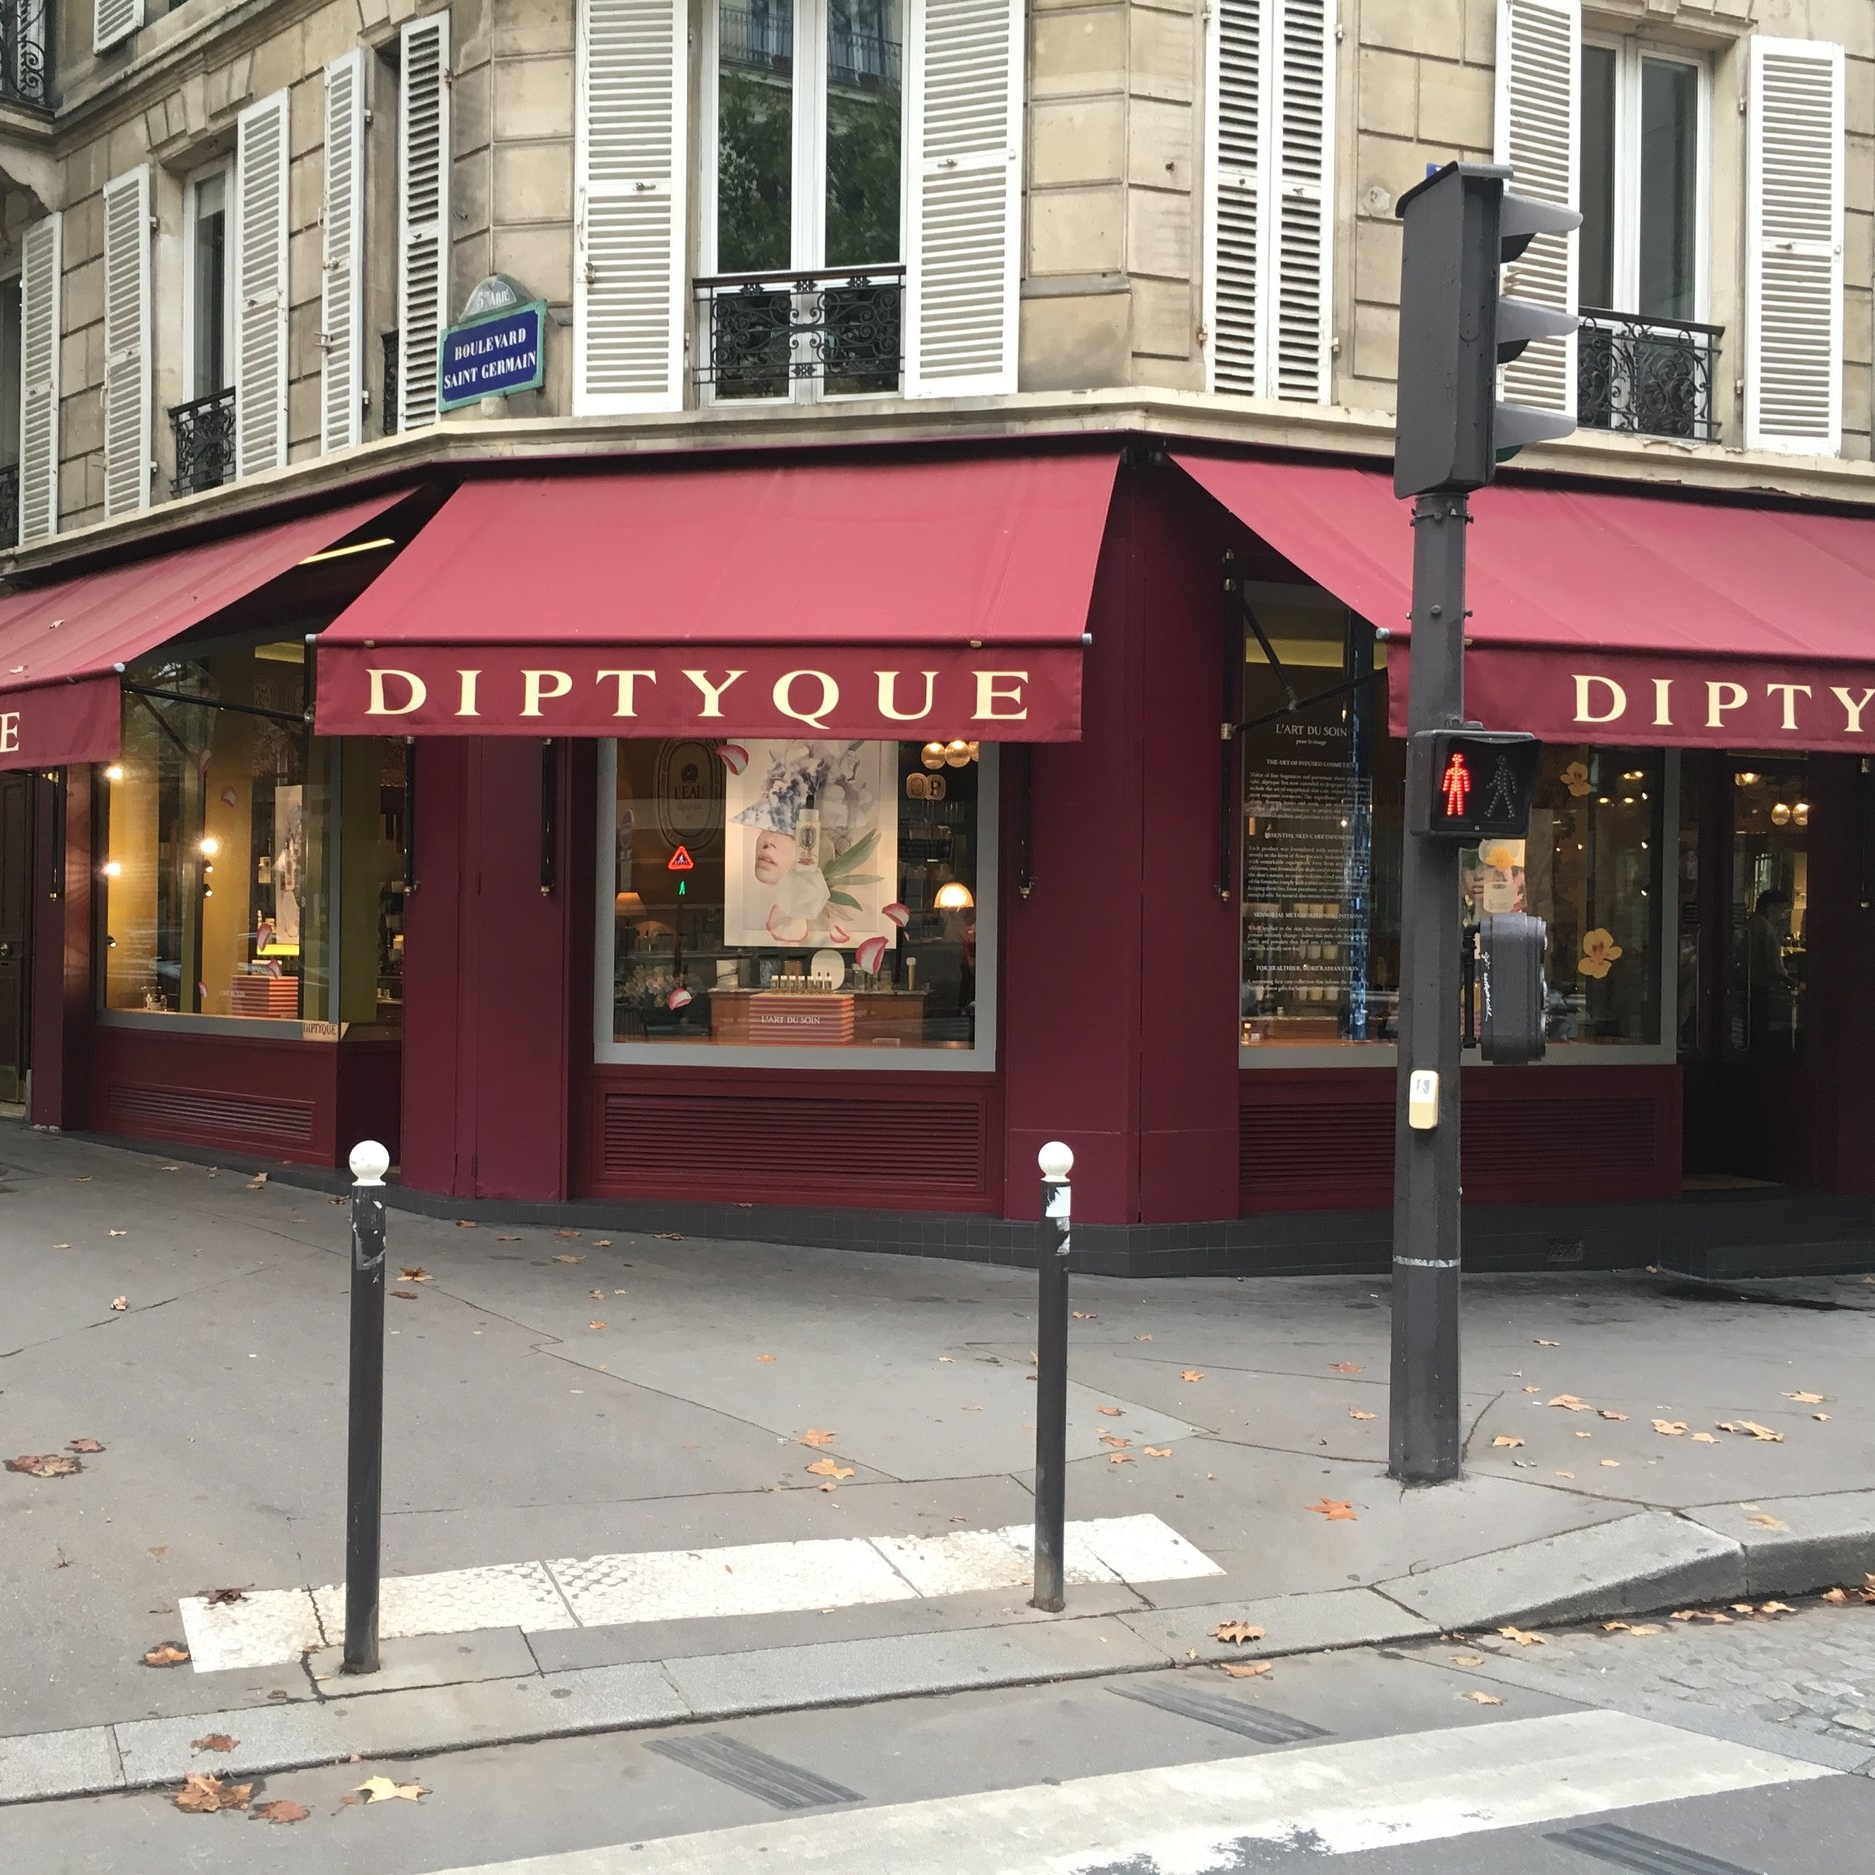 Diptyque, Paris by The Doubtful Traveller